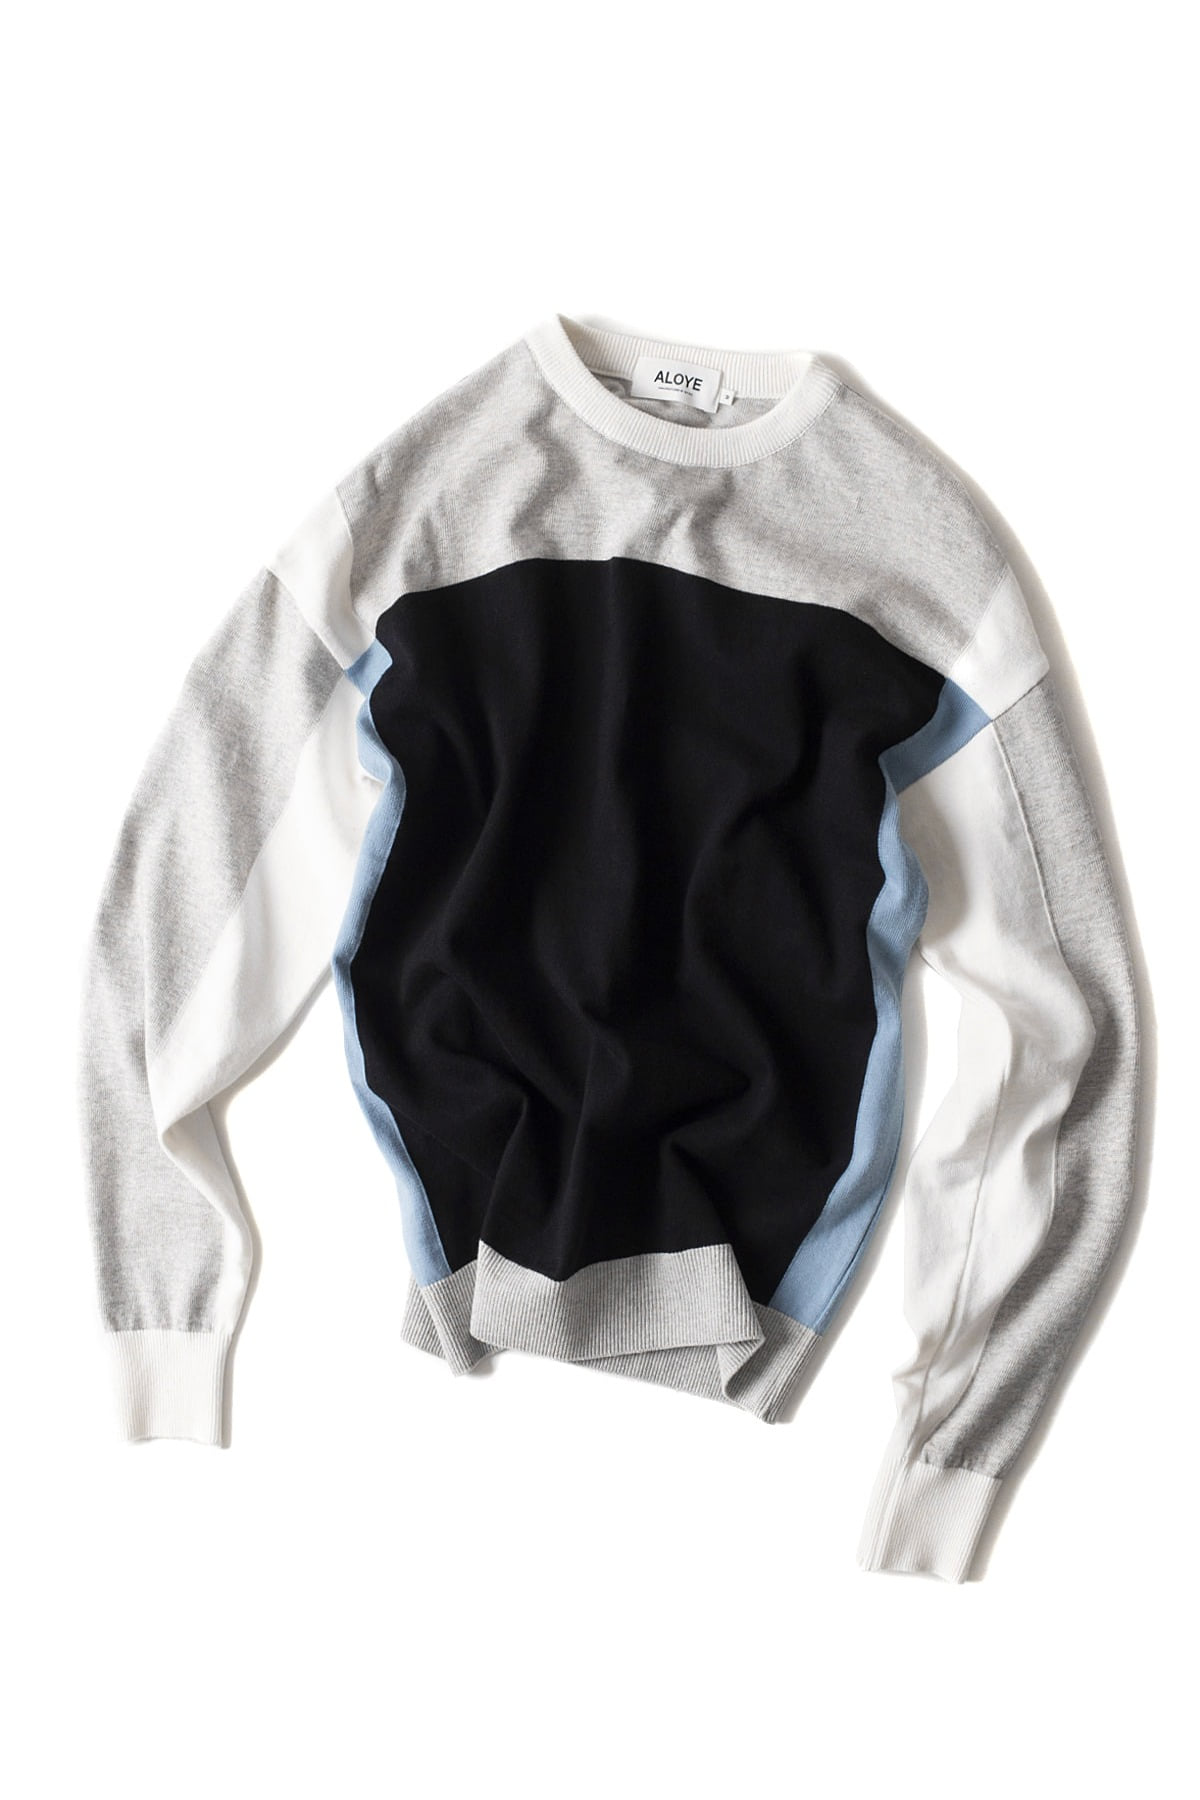 ALOYE : G.F.G.S Long Sleeve Cotton Knitted (Gray / Black)